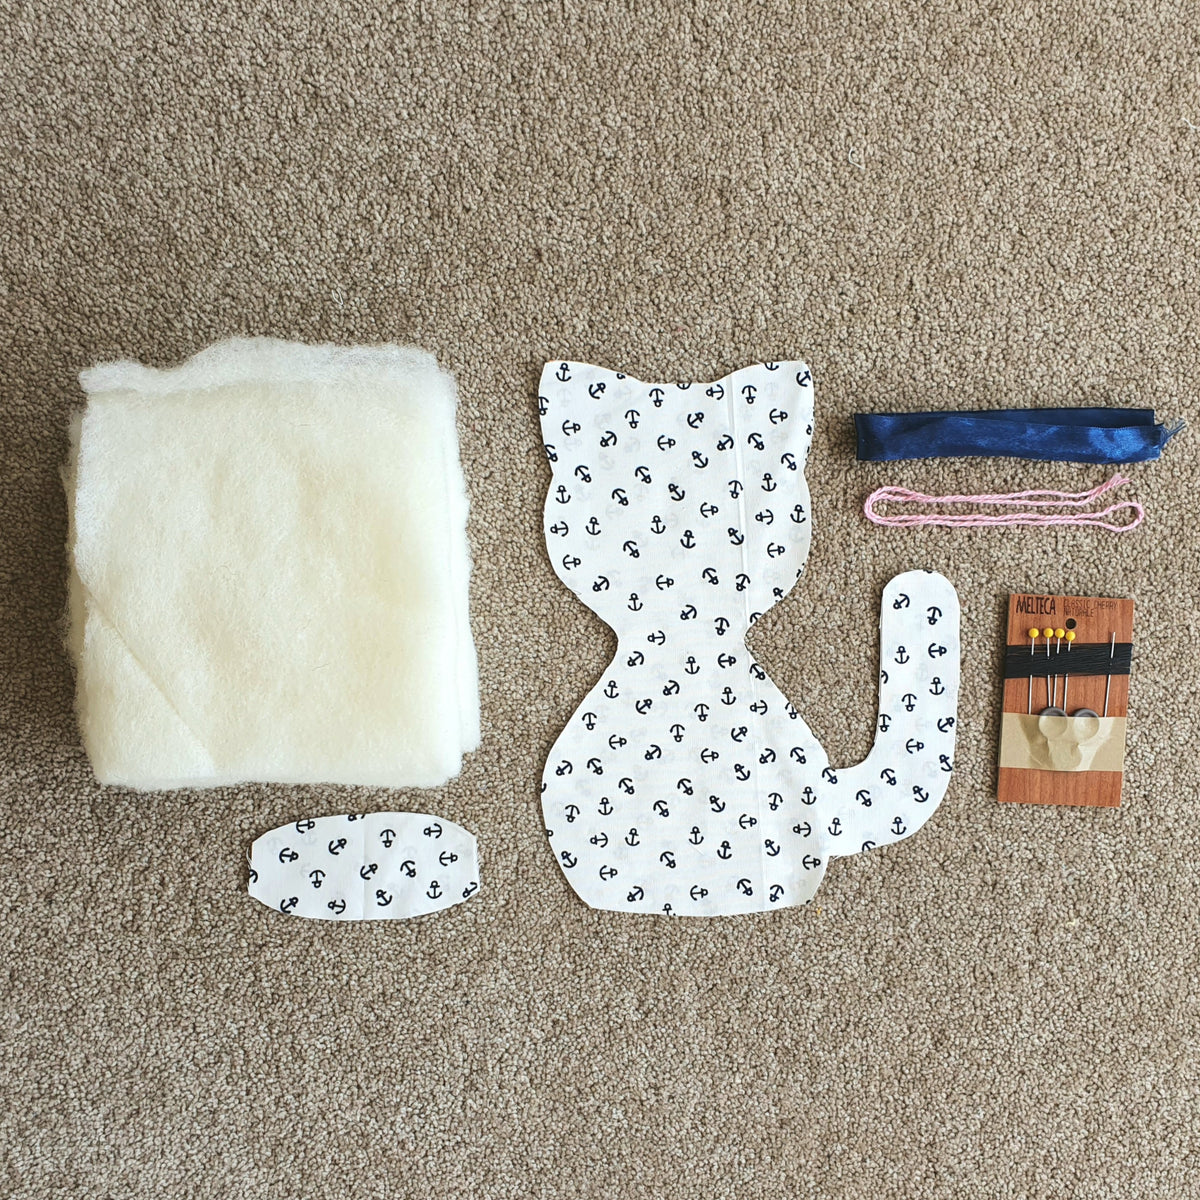 DIY Upcycle Cat Toy Sewing Kit